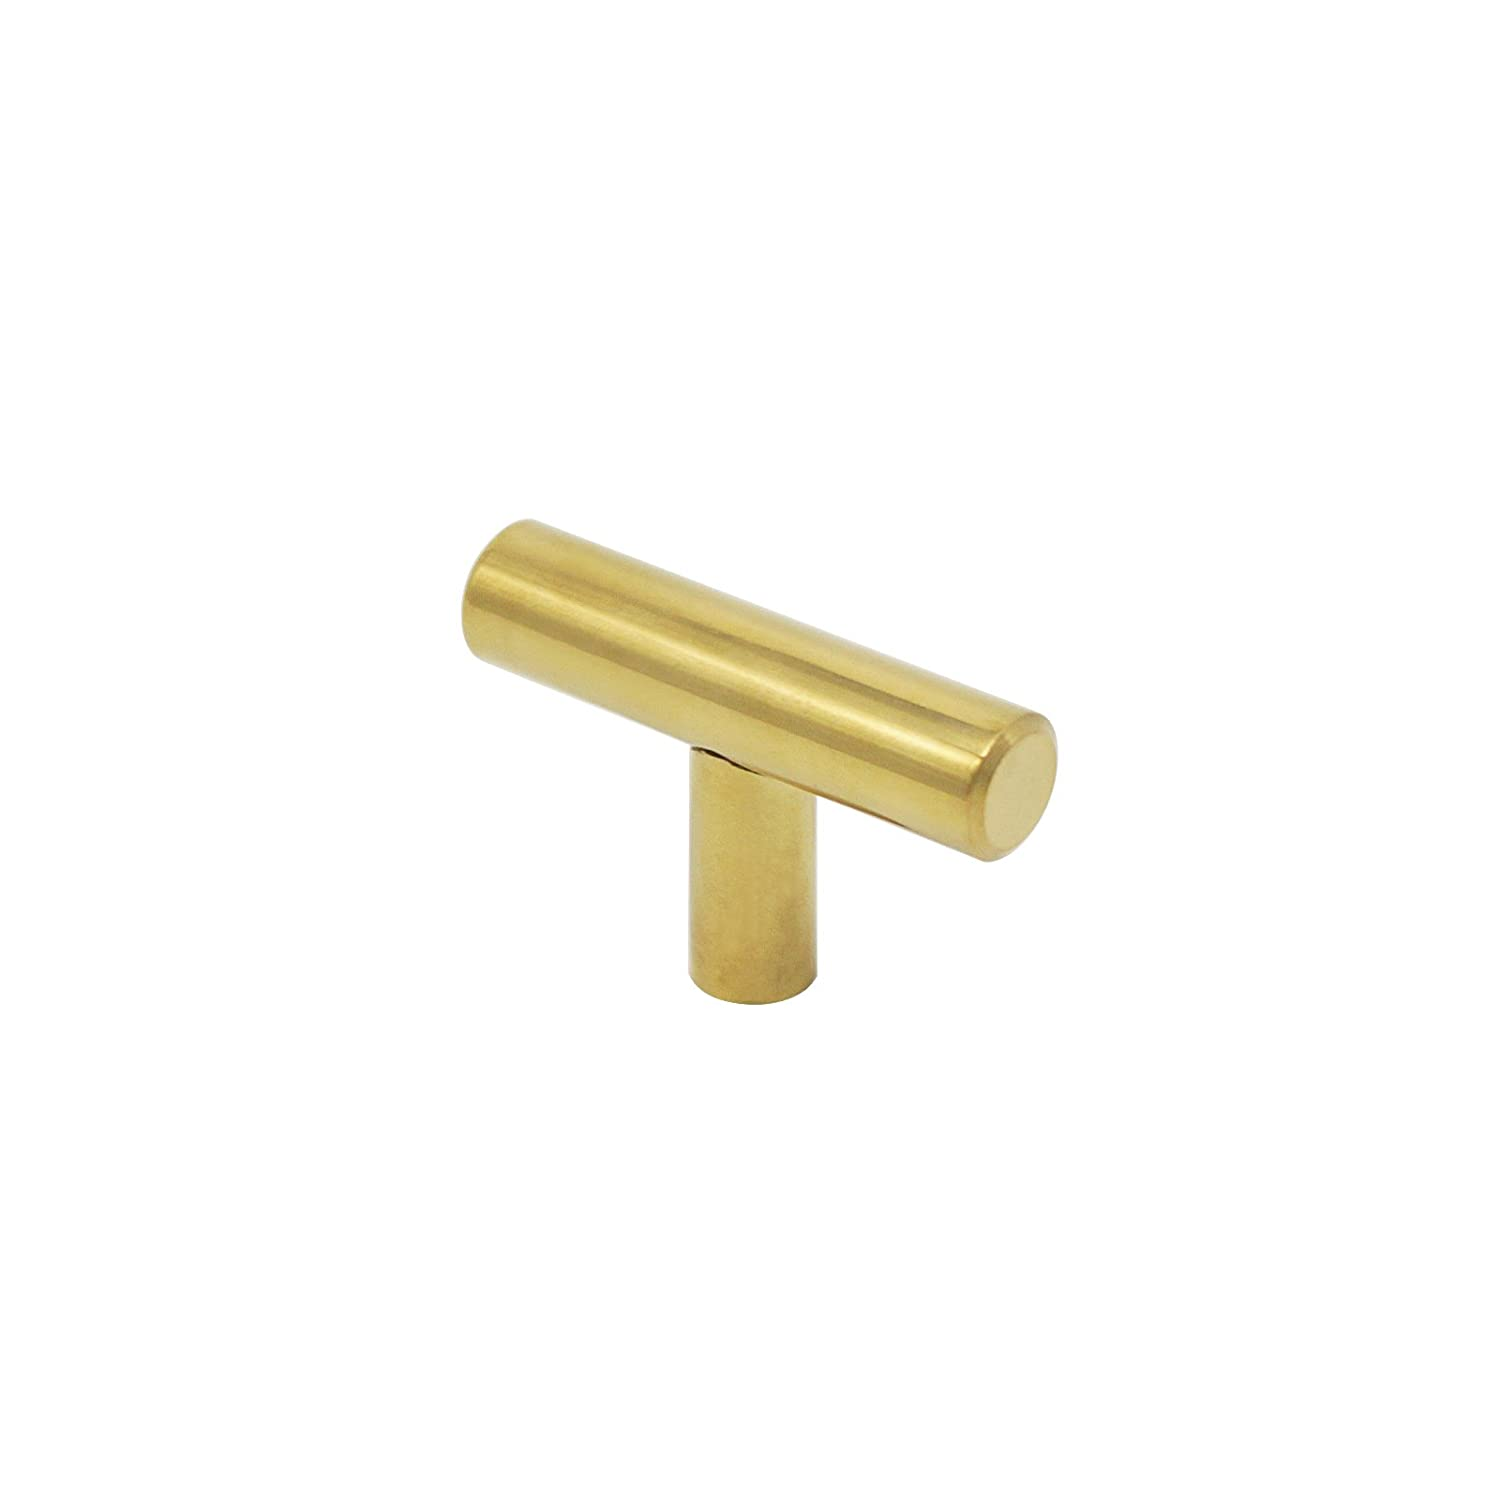 Plain Finish Made in US Morton Machine Works KHS-51SS Knurled Head 32mm Length Fully Threaded 300 Series Stainless Steel Thumb Screw Dog Point M4-0.7 Metric Coarse Threads